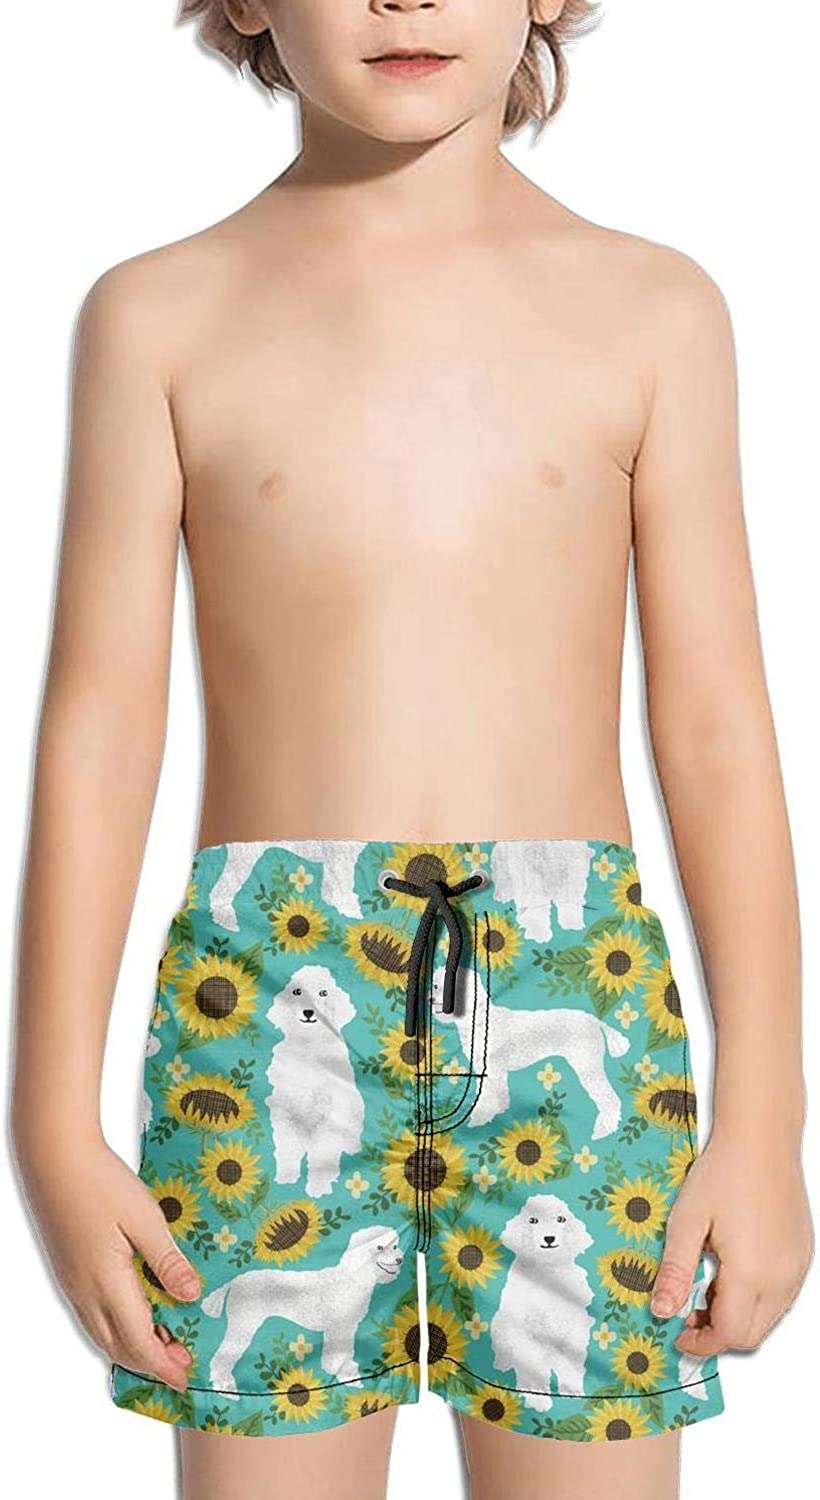 HailinED Boys Kids Blue Desert camo Quick Dry Beach Swim Trunk Fully Lined Swimsuit Beach Shorts with Pocket